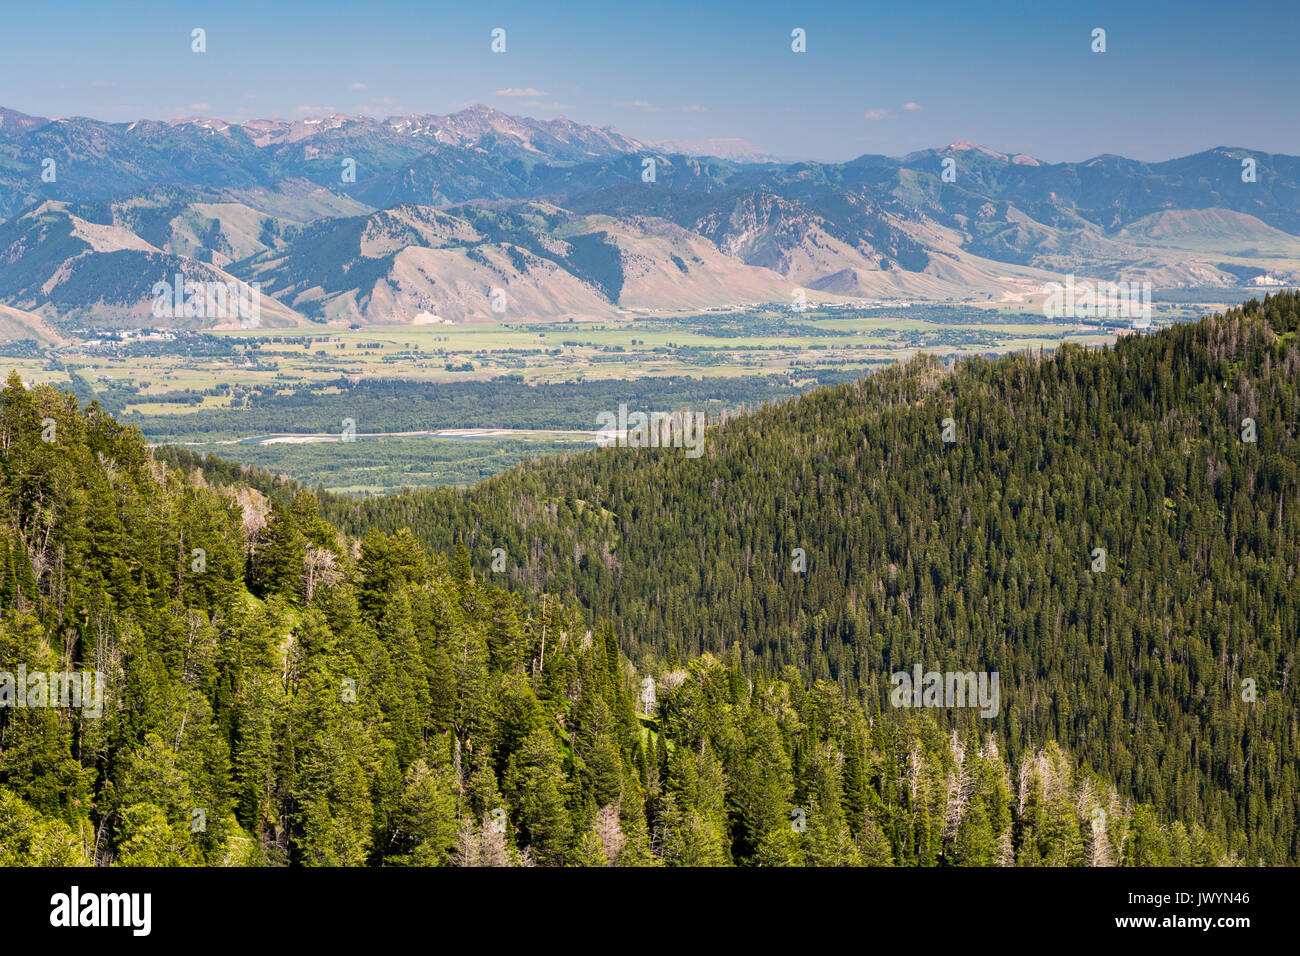 The Gros Ventre Mountains rising beyond the valley of Jackson Hole and the Snake River Mountains. Bridger-Teton National Forest, Wyoming - Stock Image